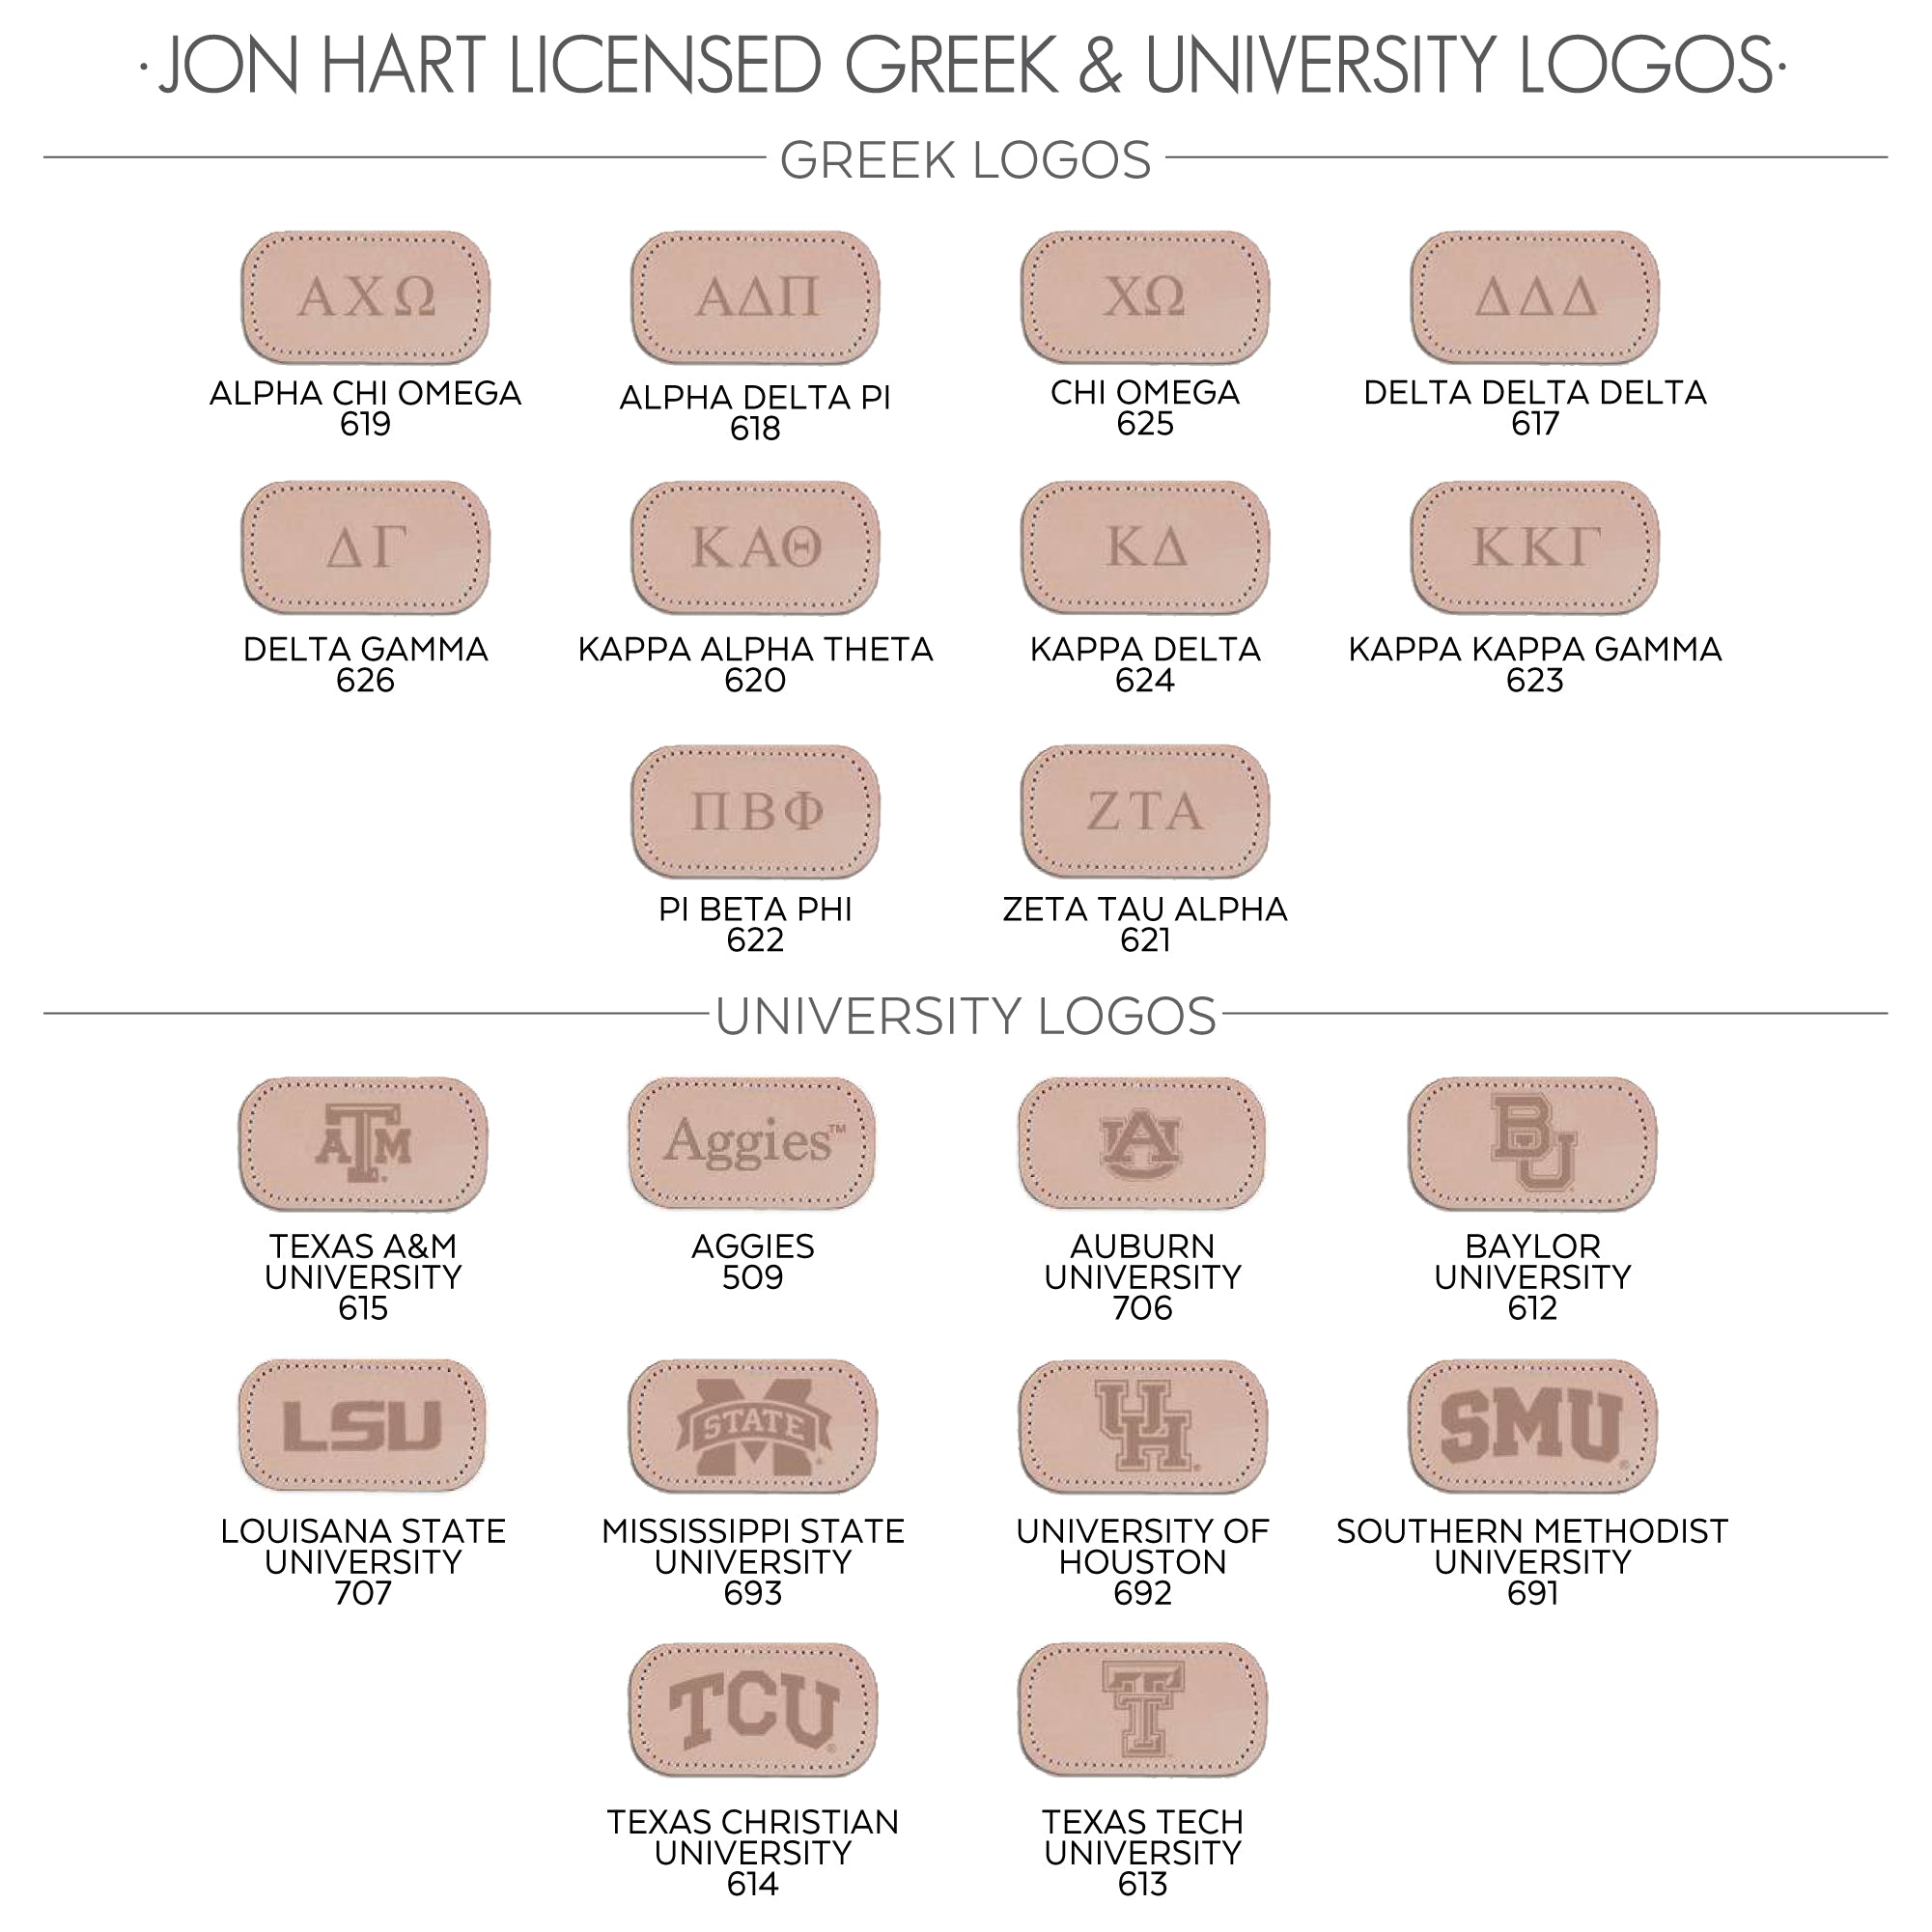 JON HART GREEK UNIVERSITY